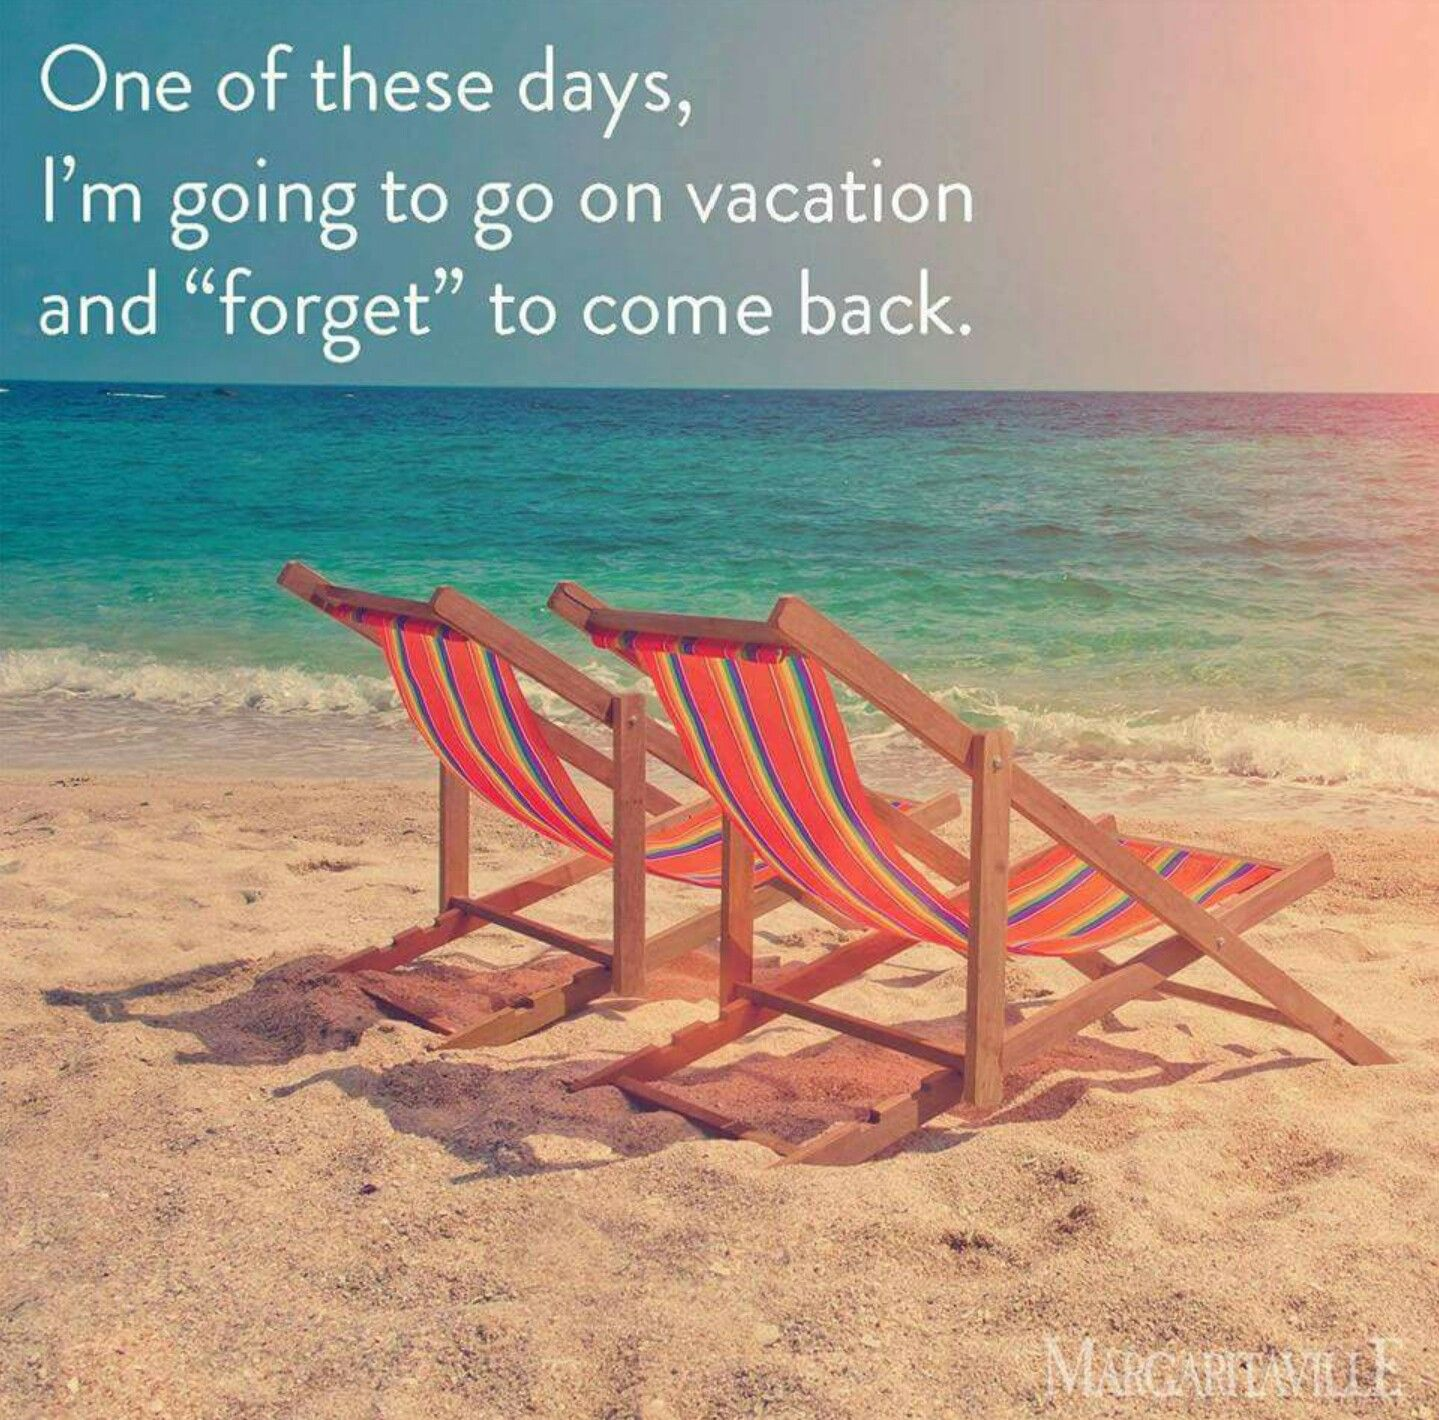 1000 Beach Vacation Quotes On Pinterest Beach Vacations